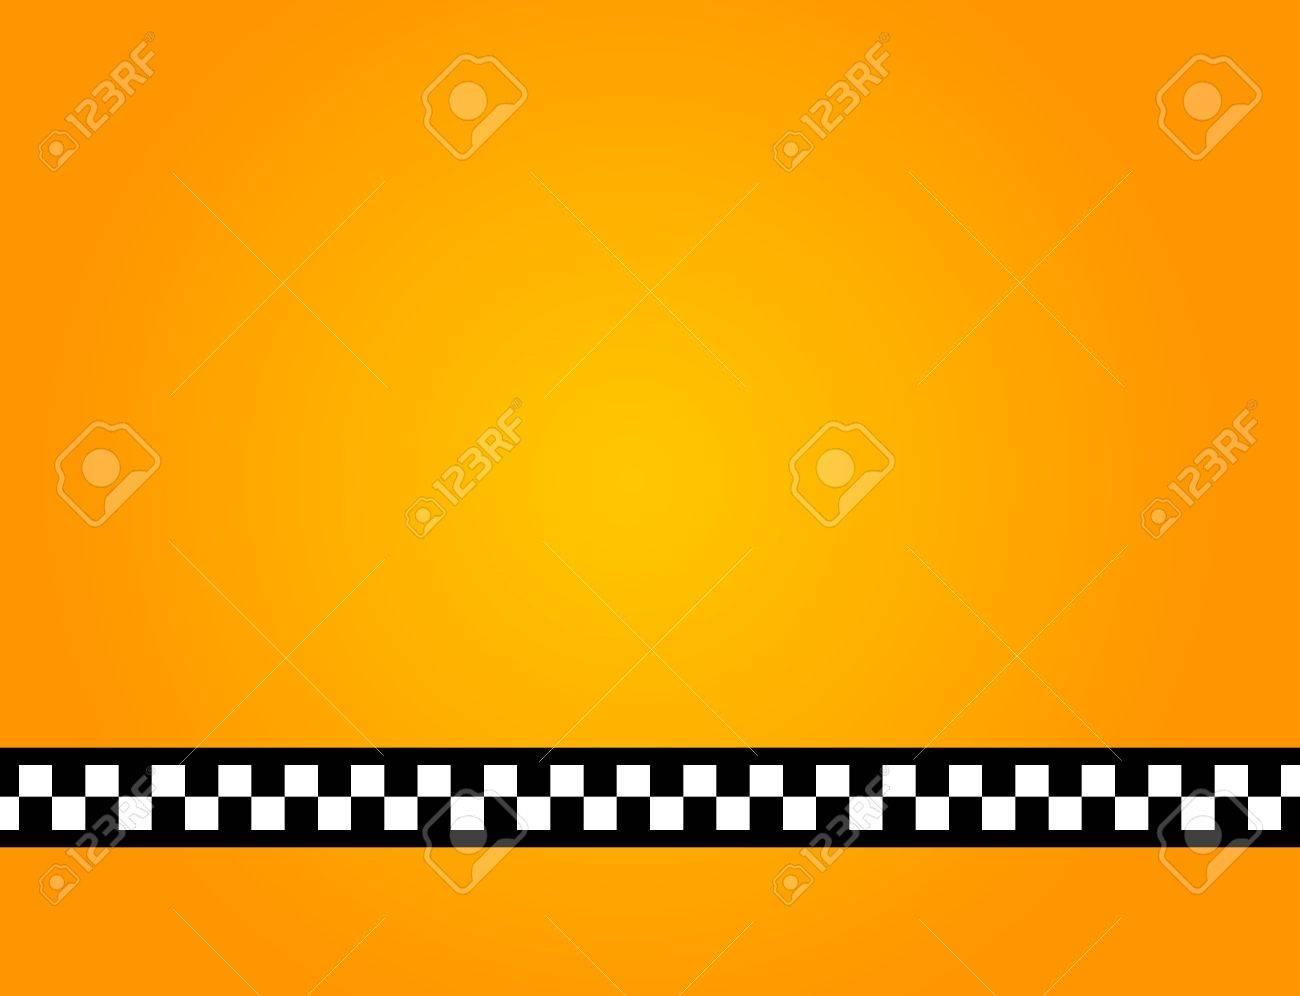 Background of a yellow taxi cab without text Stock Photo - 9741925